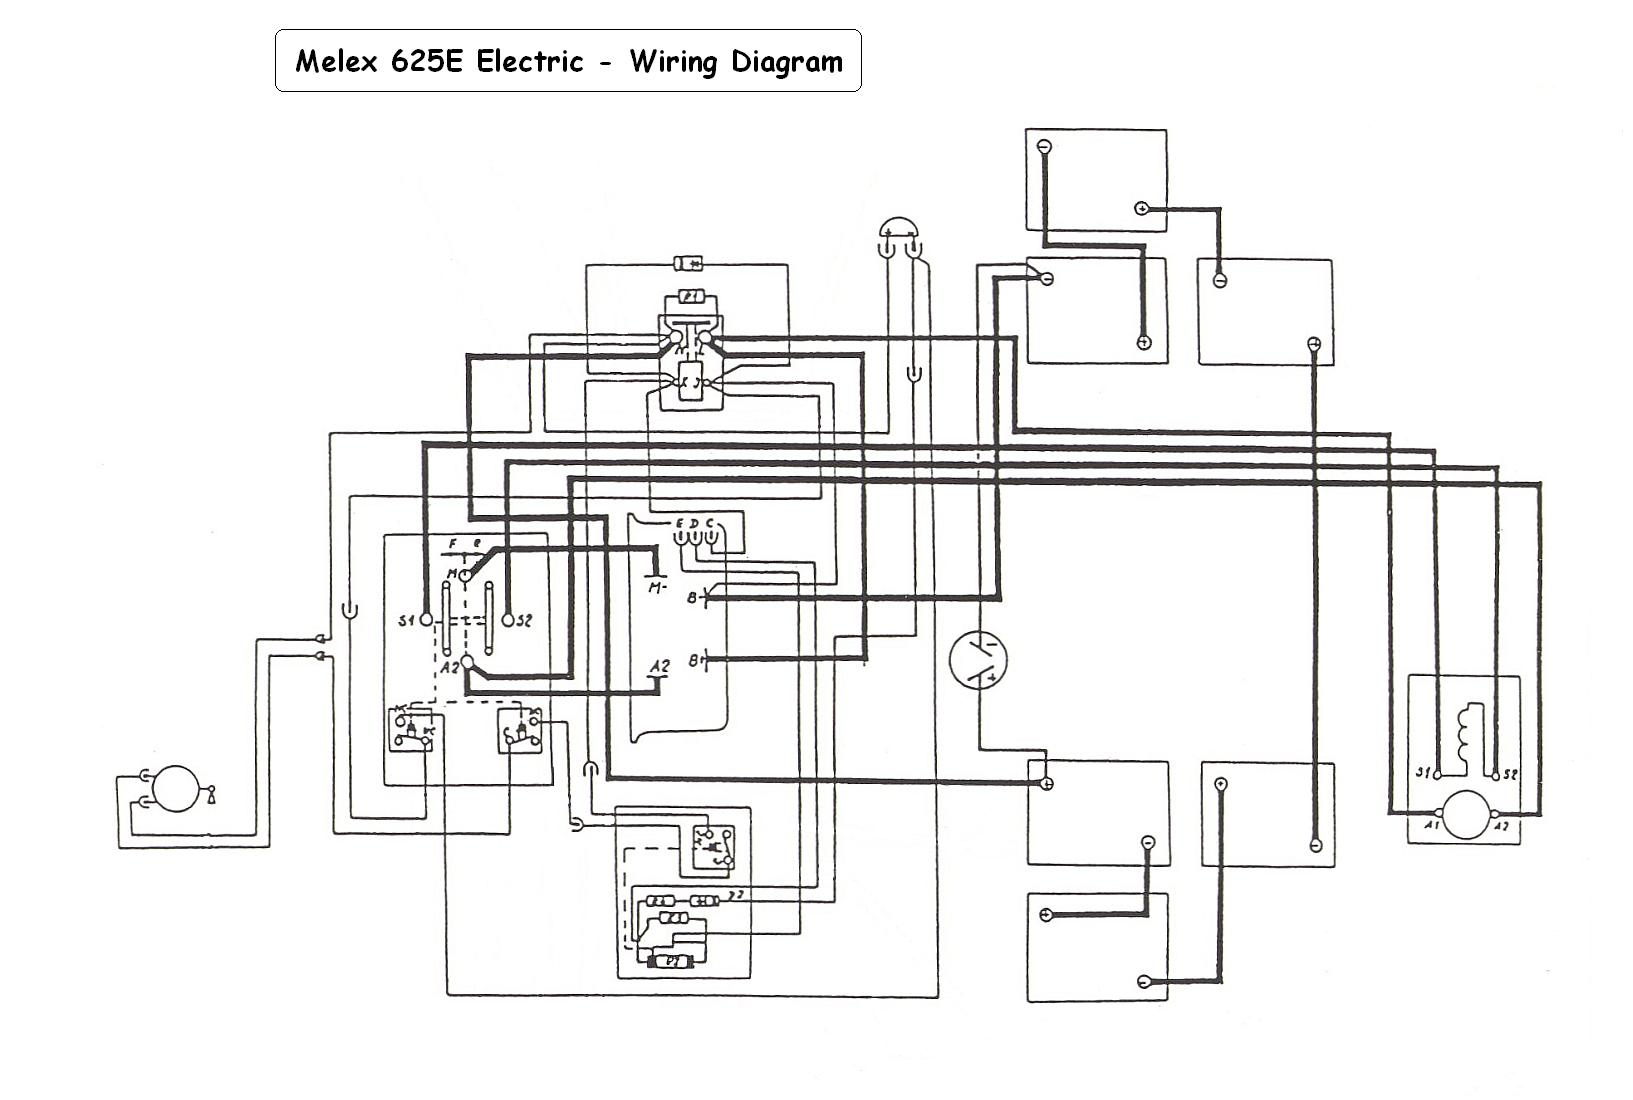 columbia par car 48v wiring diagram - wiring diagram columbia gas golf cart wiring diagram #10